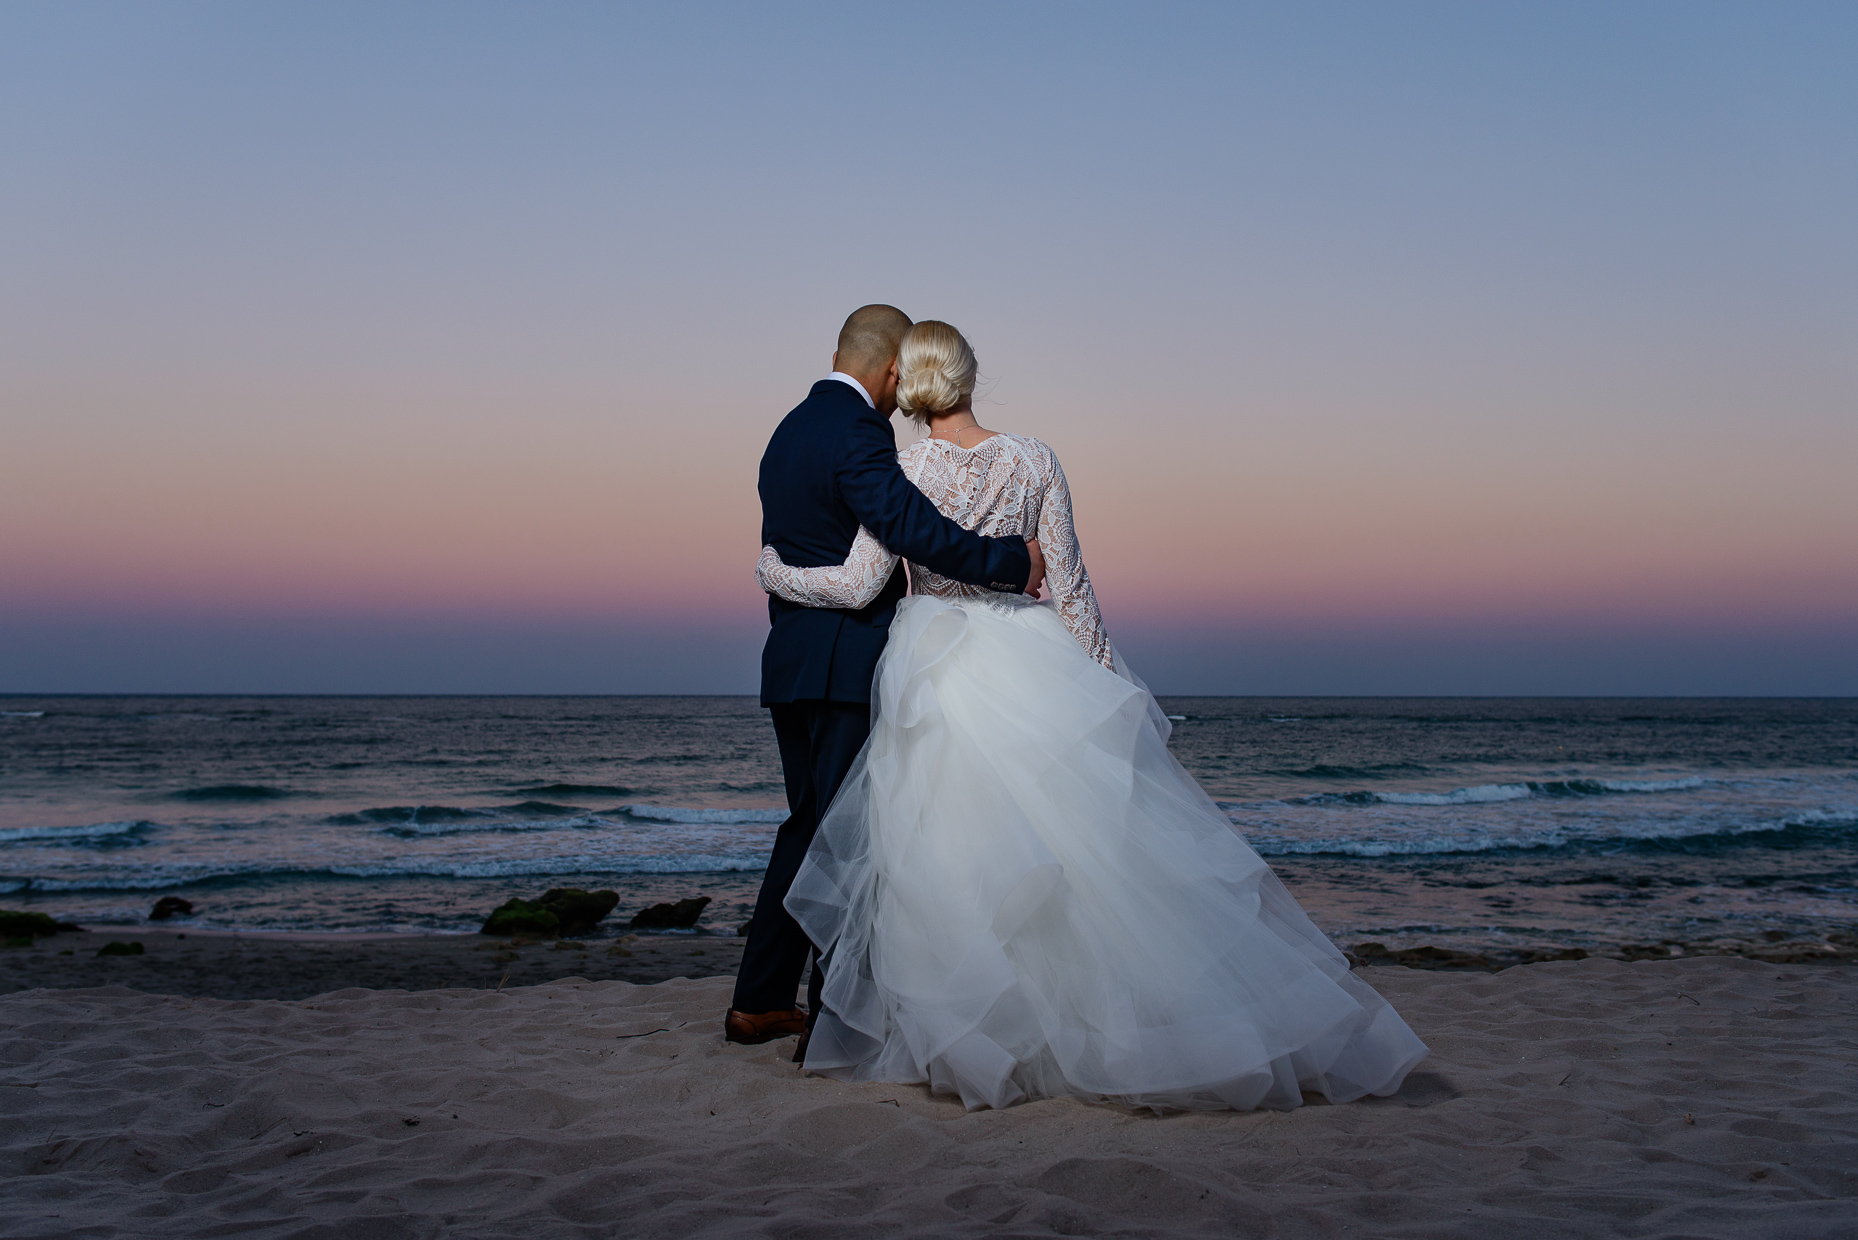 austin-wedding-photographer-destination-beach-portrait